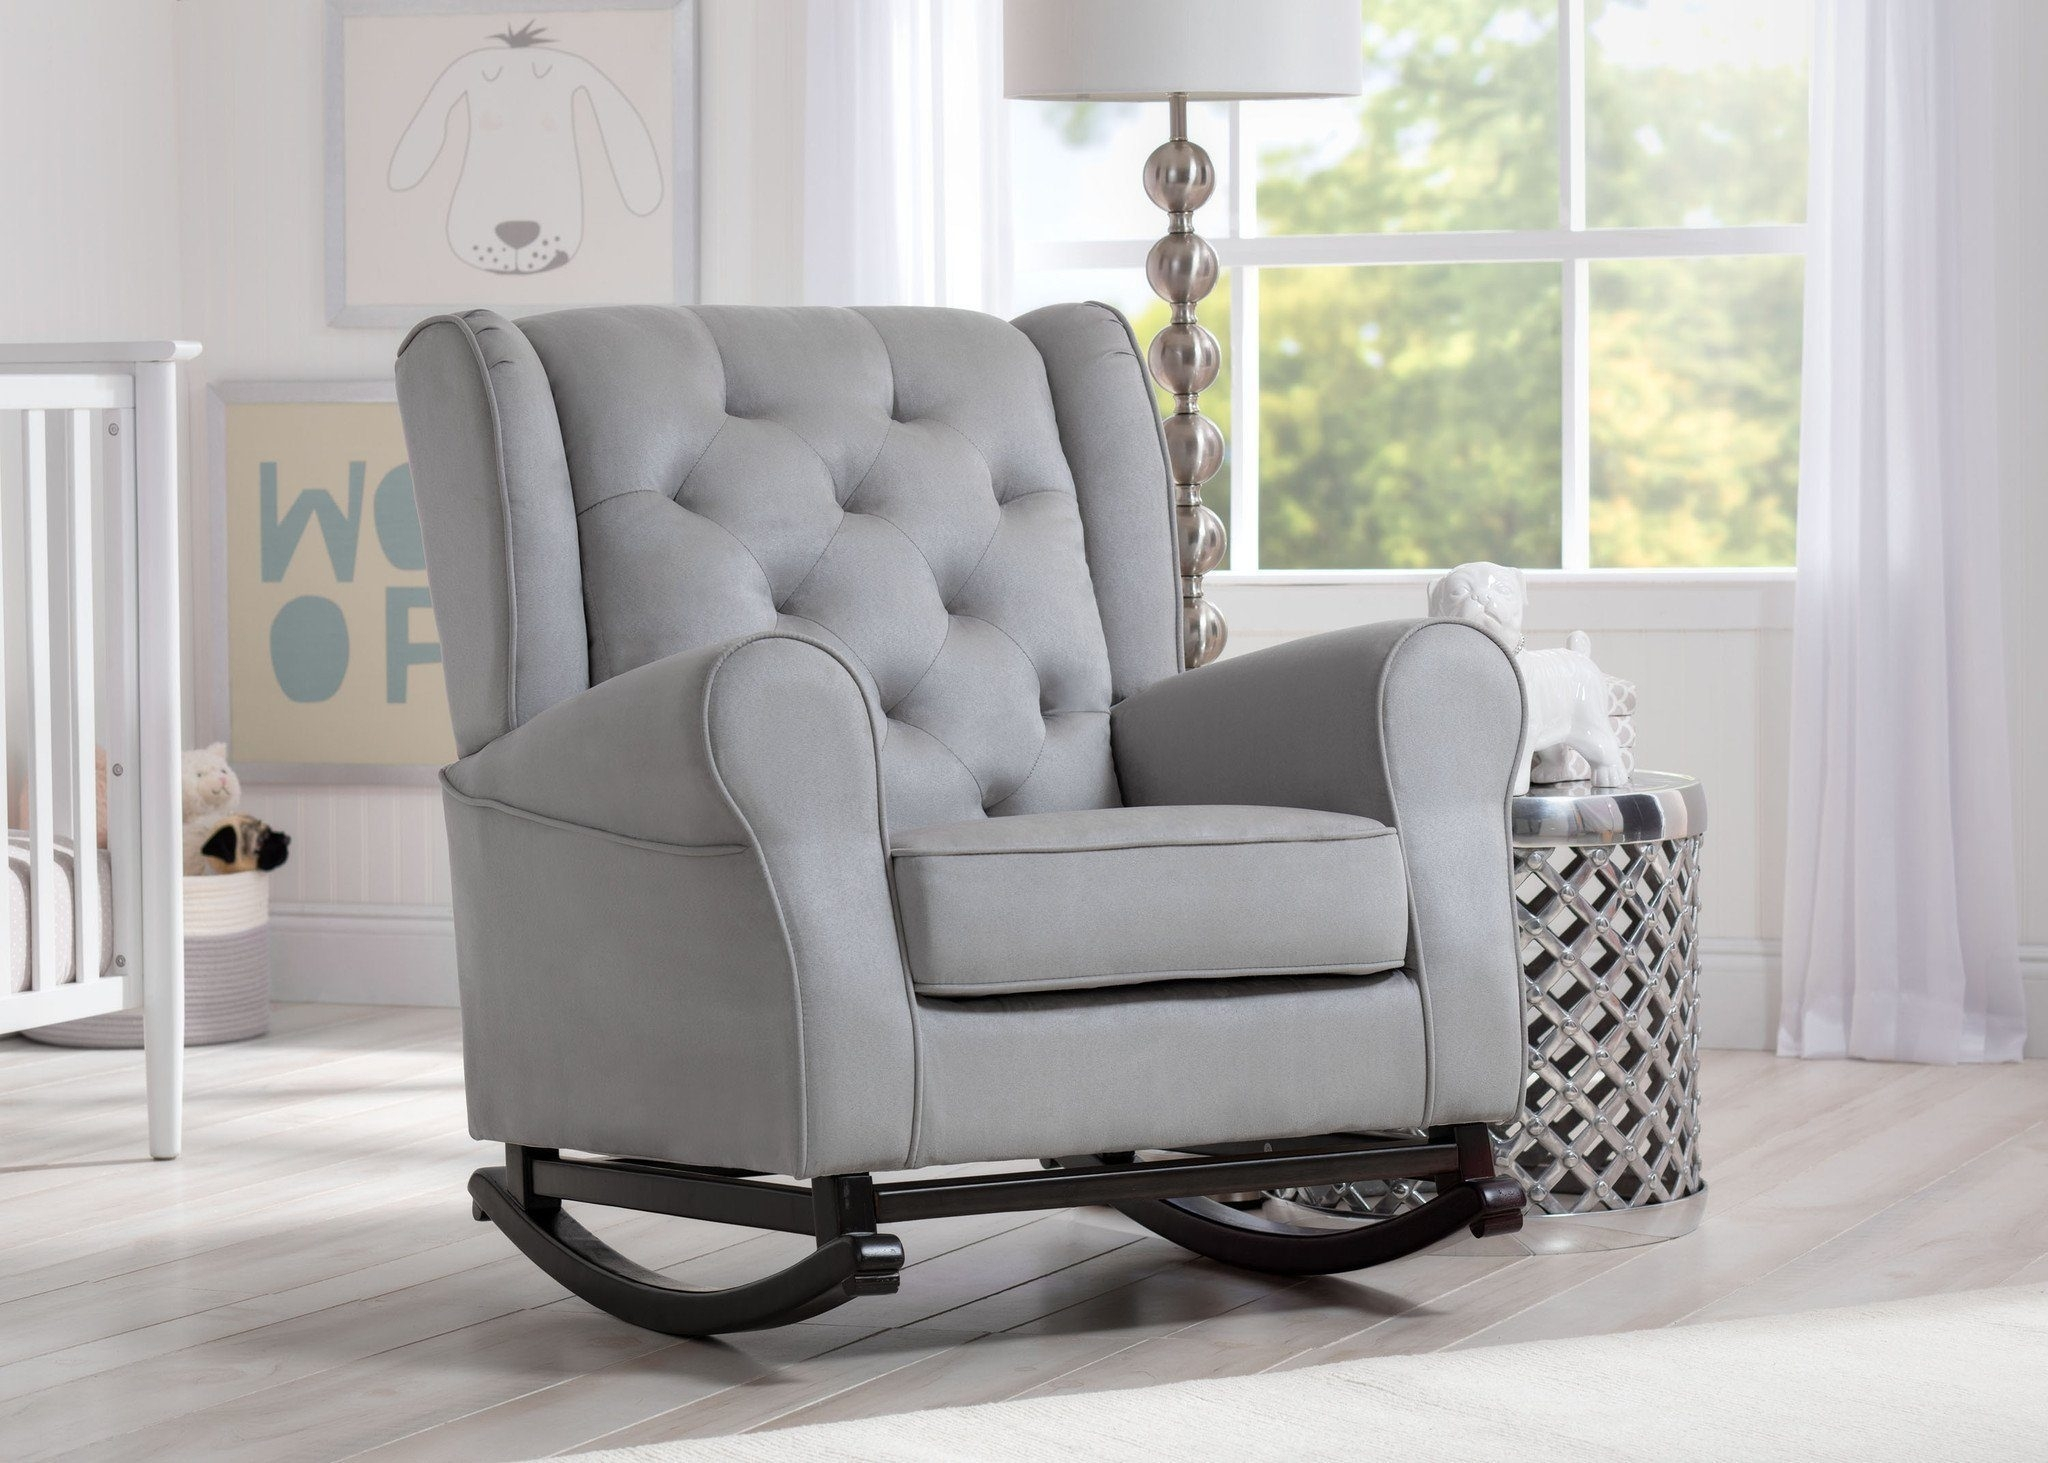 Popular Photo of Rocking Chairs For Nursery